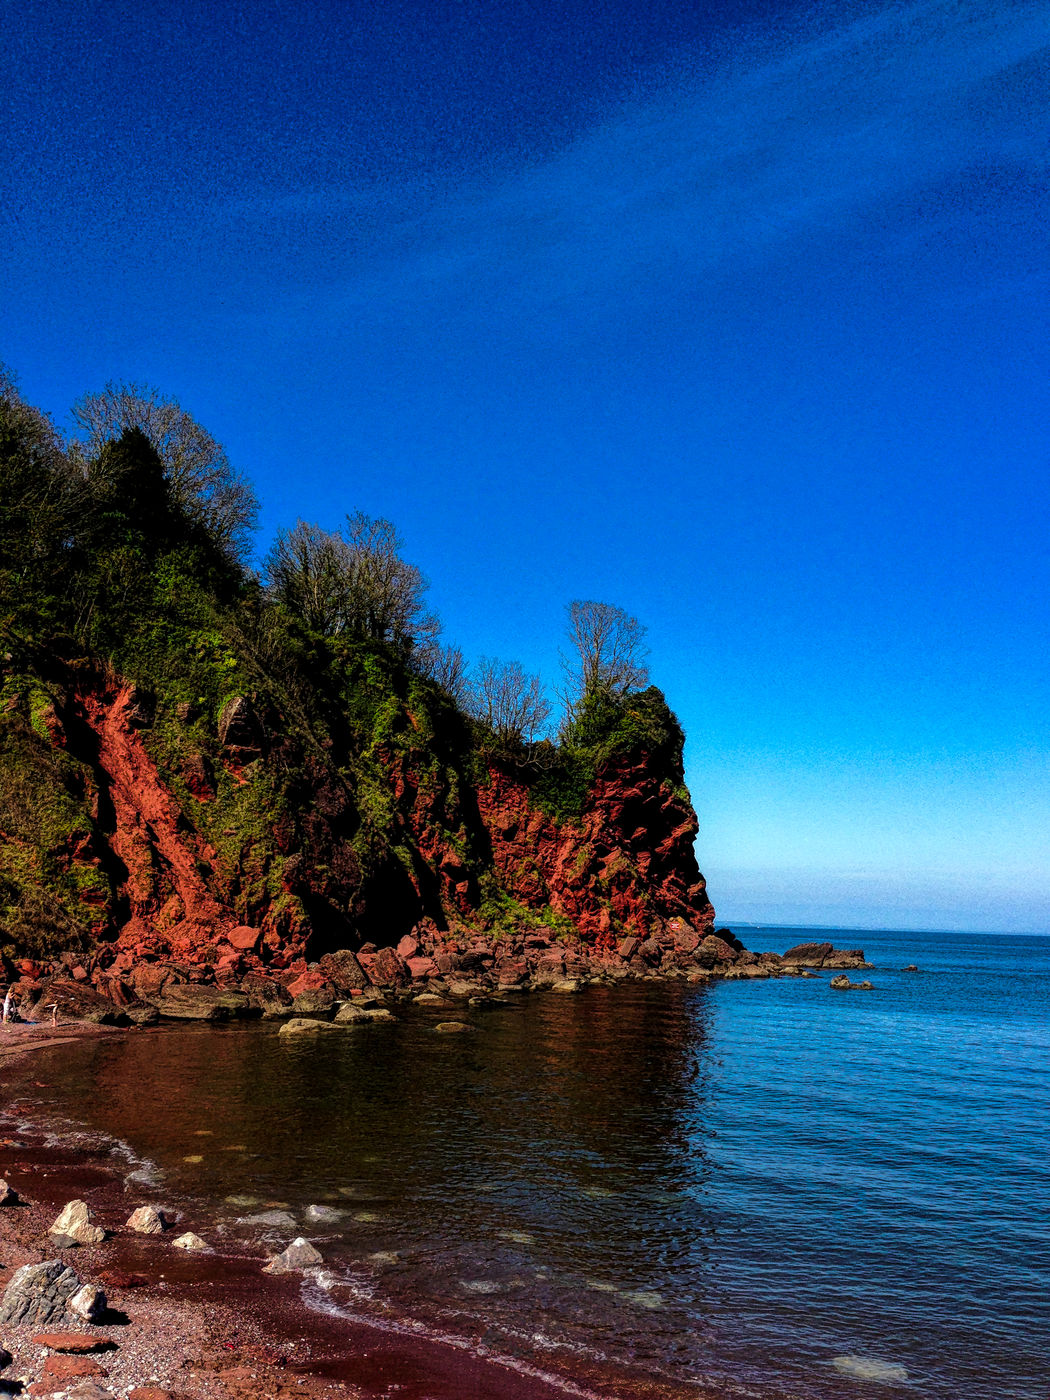 Beach Beauty In Nature Blue Clear Sky Day Maidencombe Devon Nature No People Outdoors Rock - Object Scenics Sea Sky Tranquil Scene Tranquility Tree Water